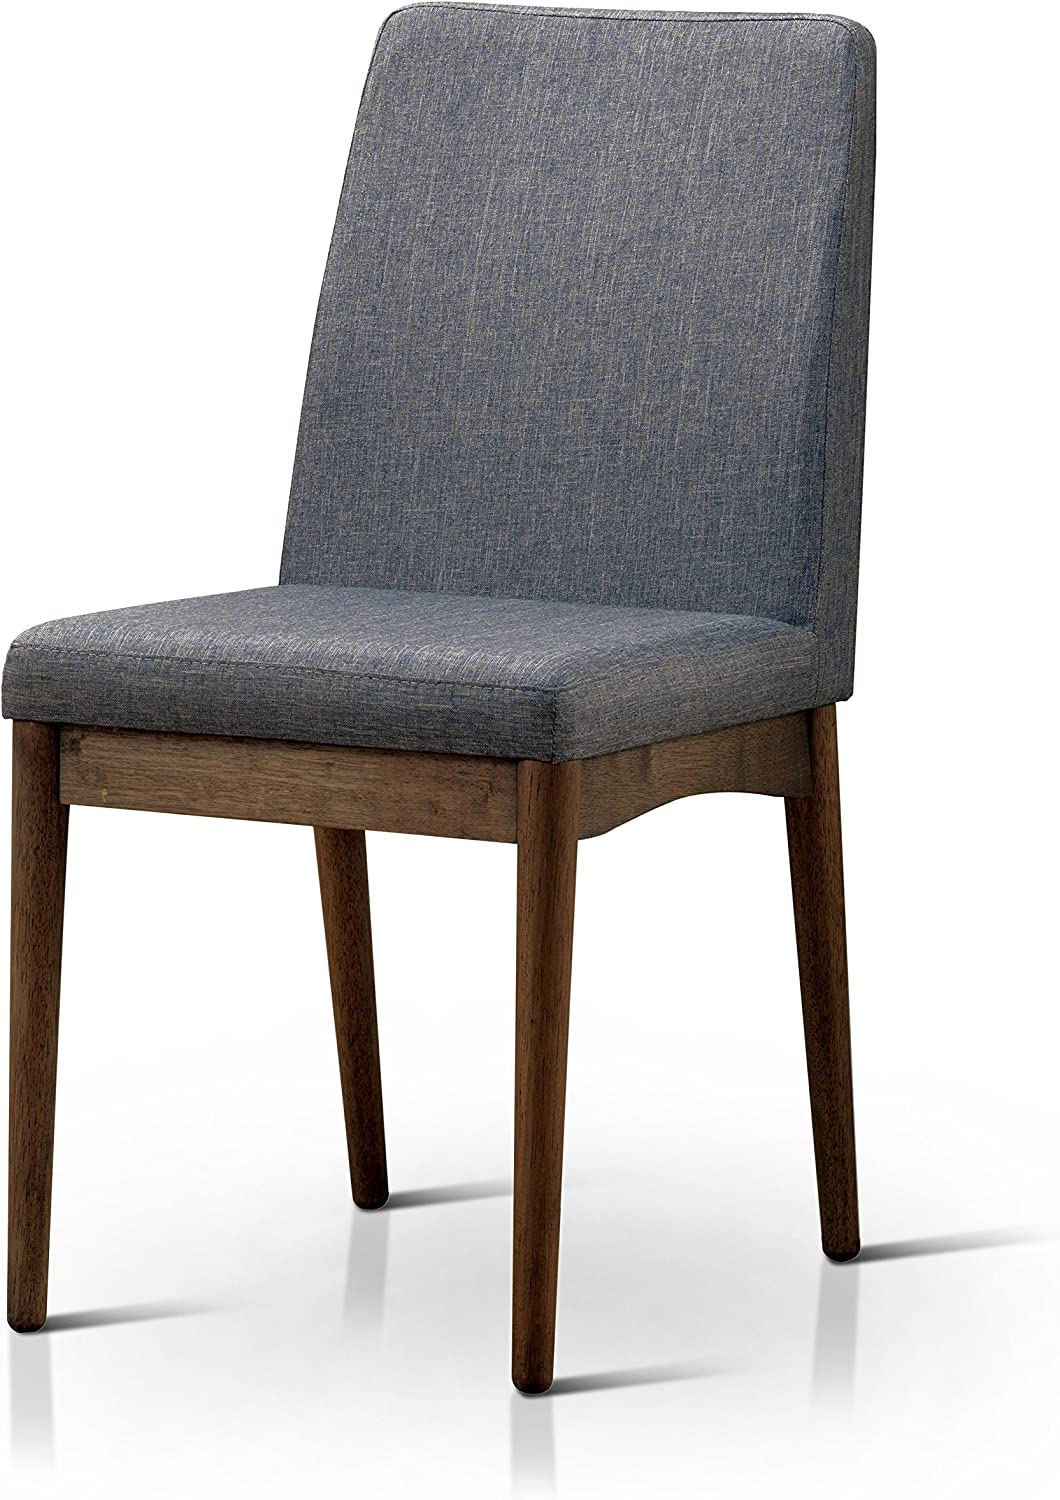 HOMES: Inside + Out Velasco Natural Tone Side Modern Max 46% OFF Free shipping Cha Valesco